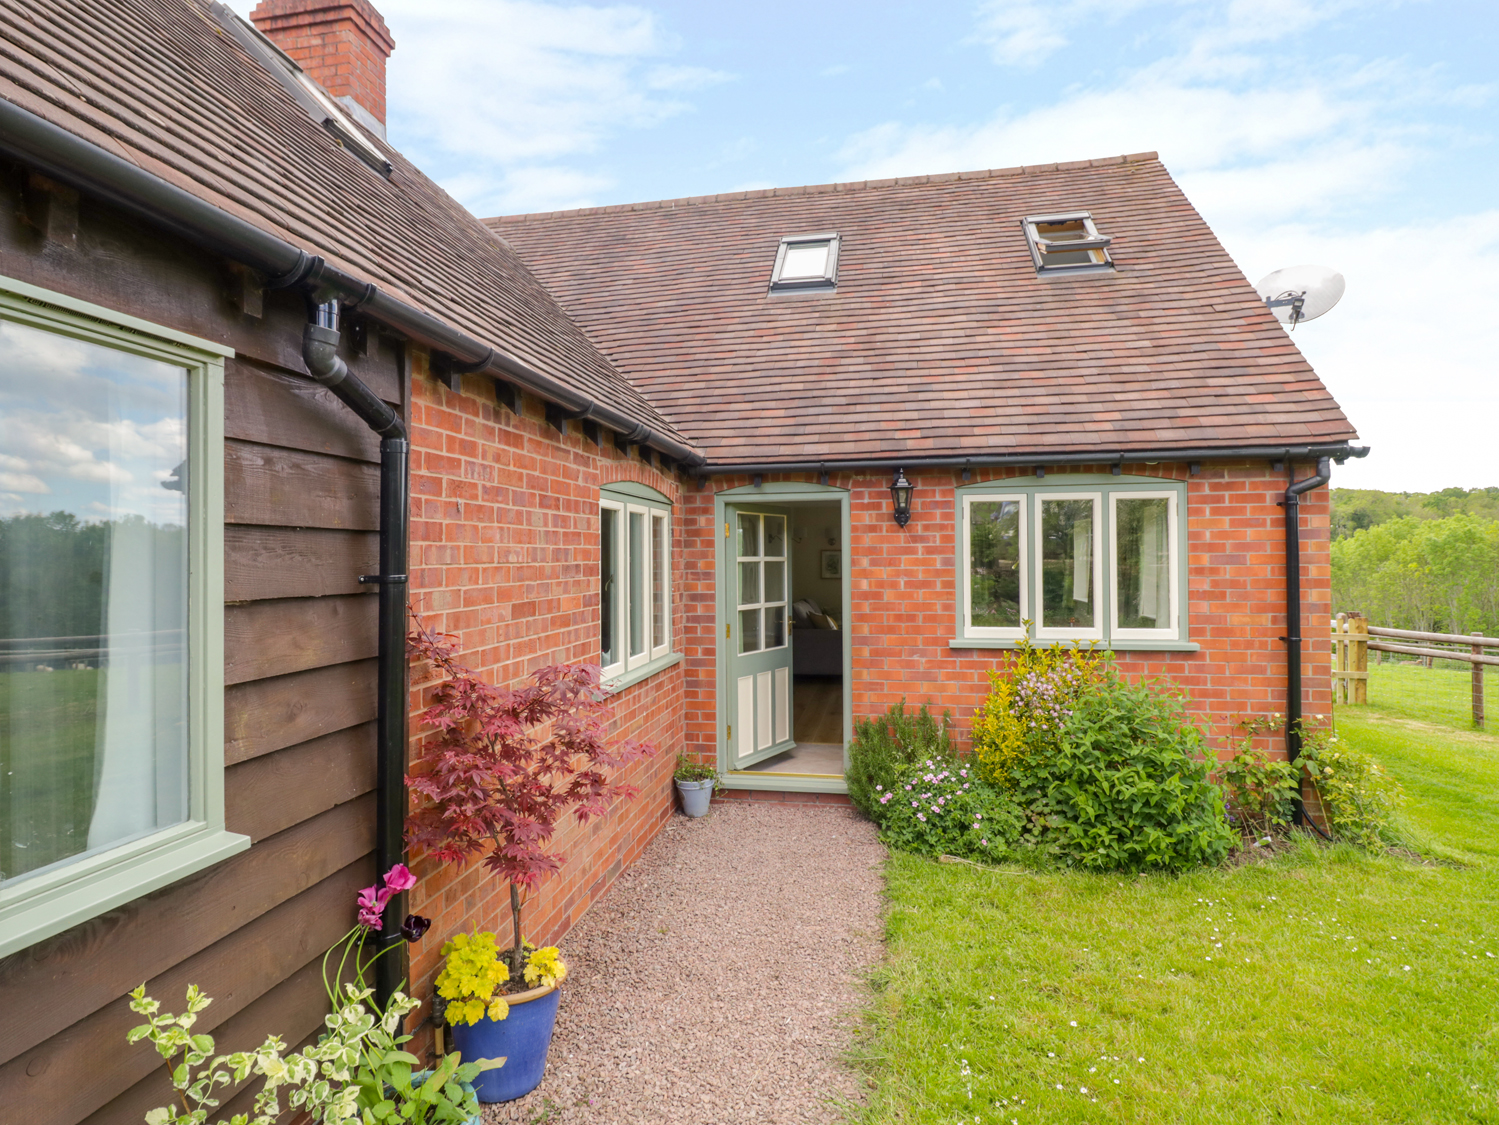 2 bedroom Cottage for rent in Tenbury Wells